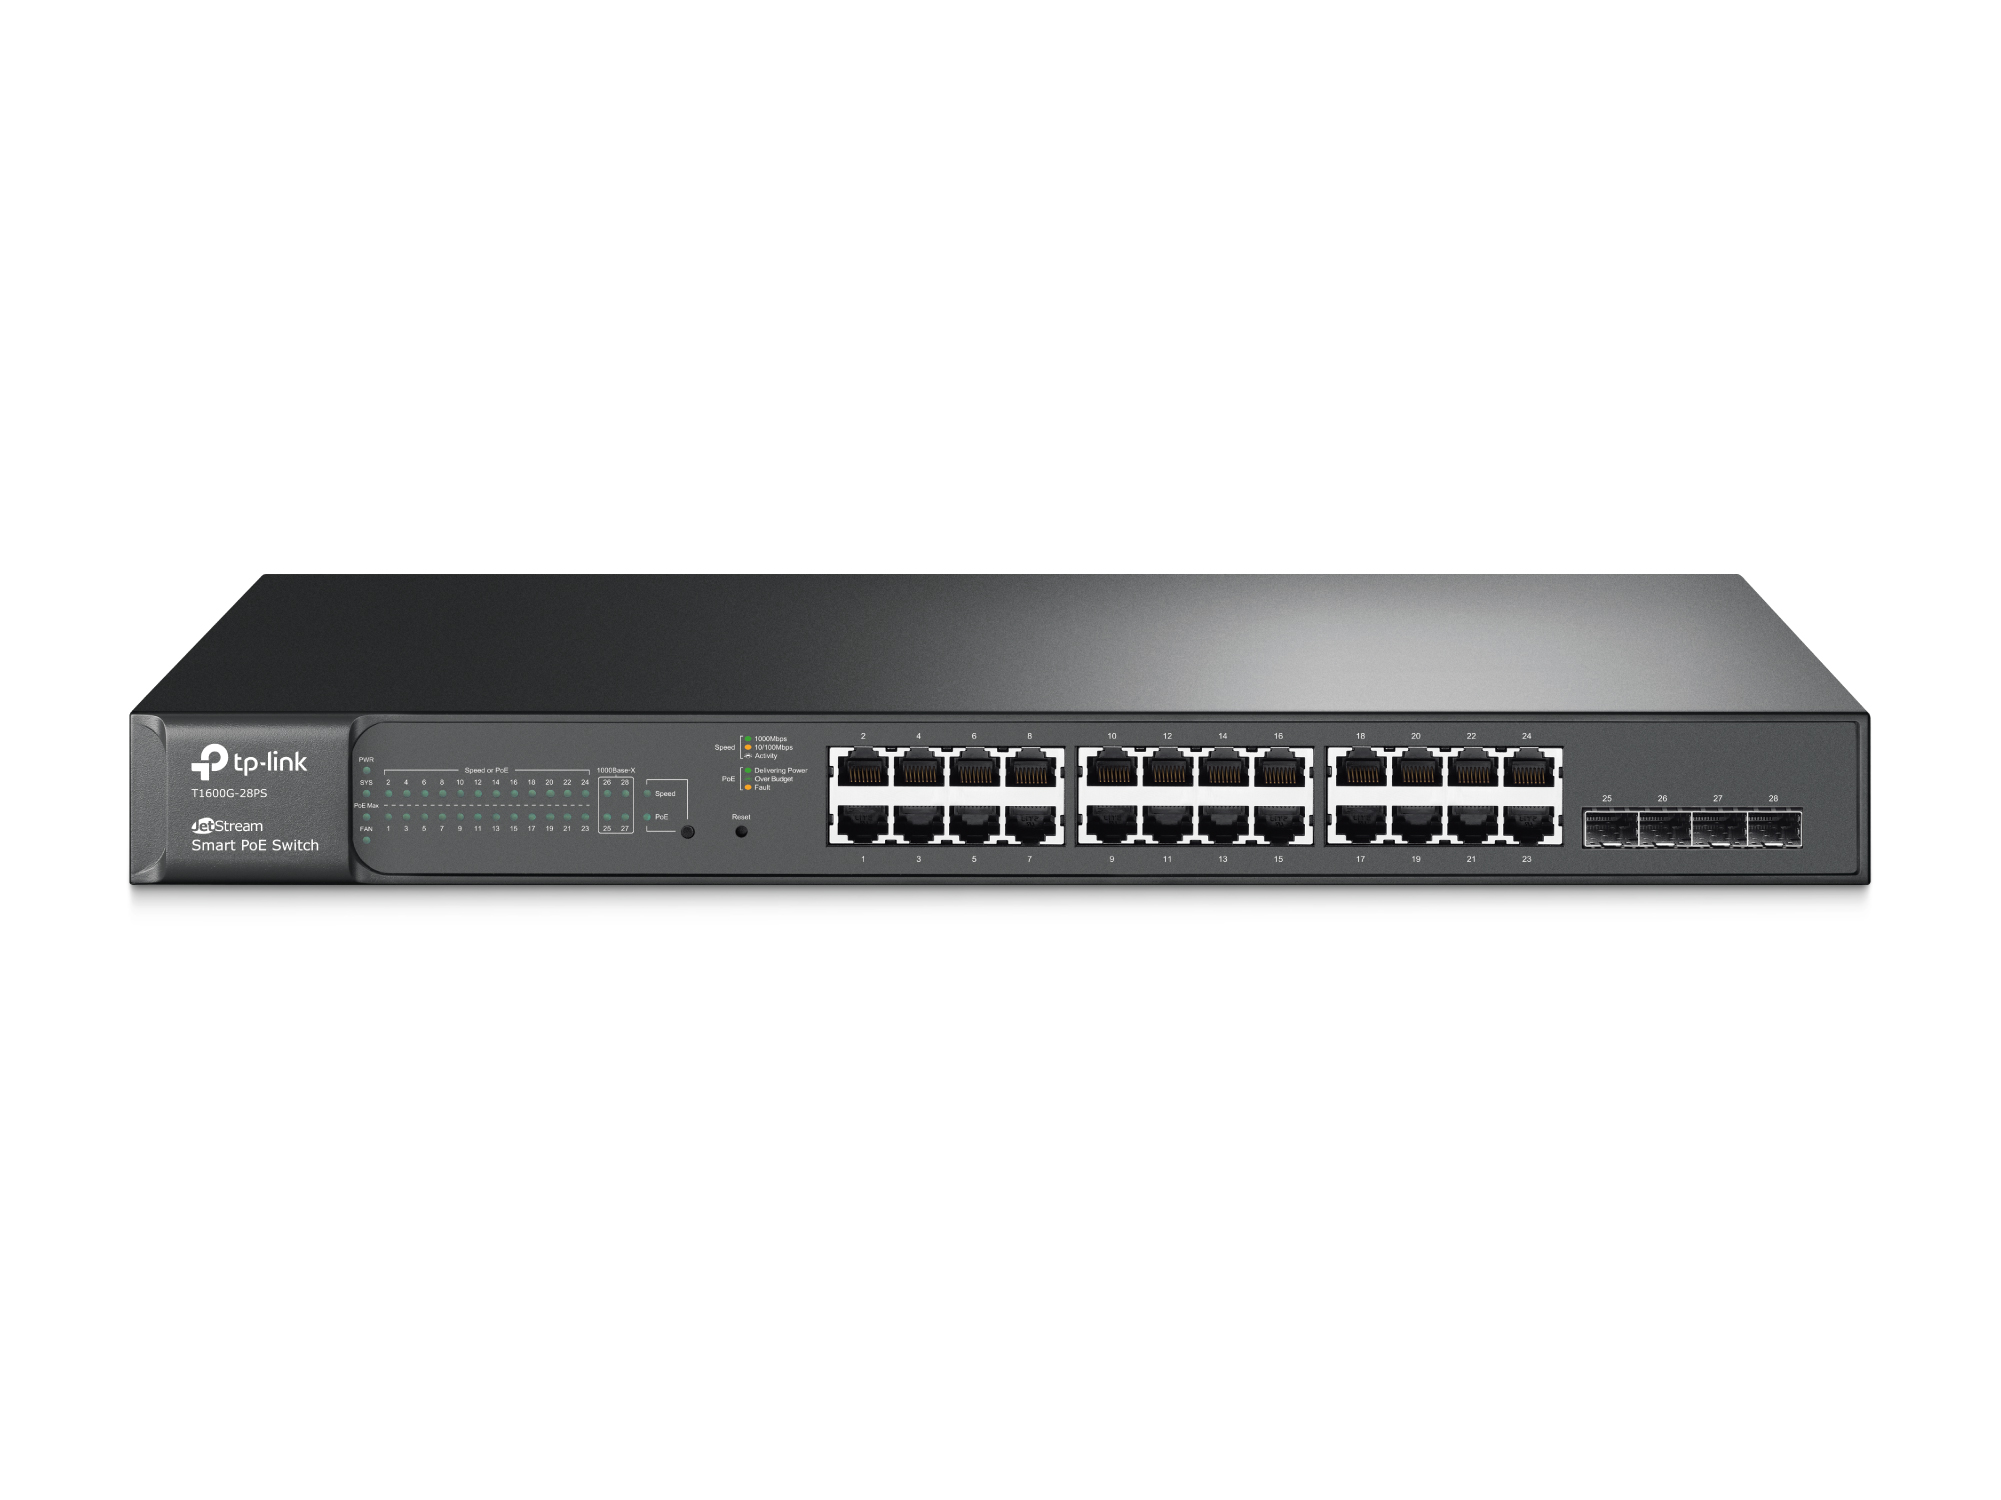 T1600G-28PS (TL-SG2424P) 24xGE PoE+, 4xSFP SMART